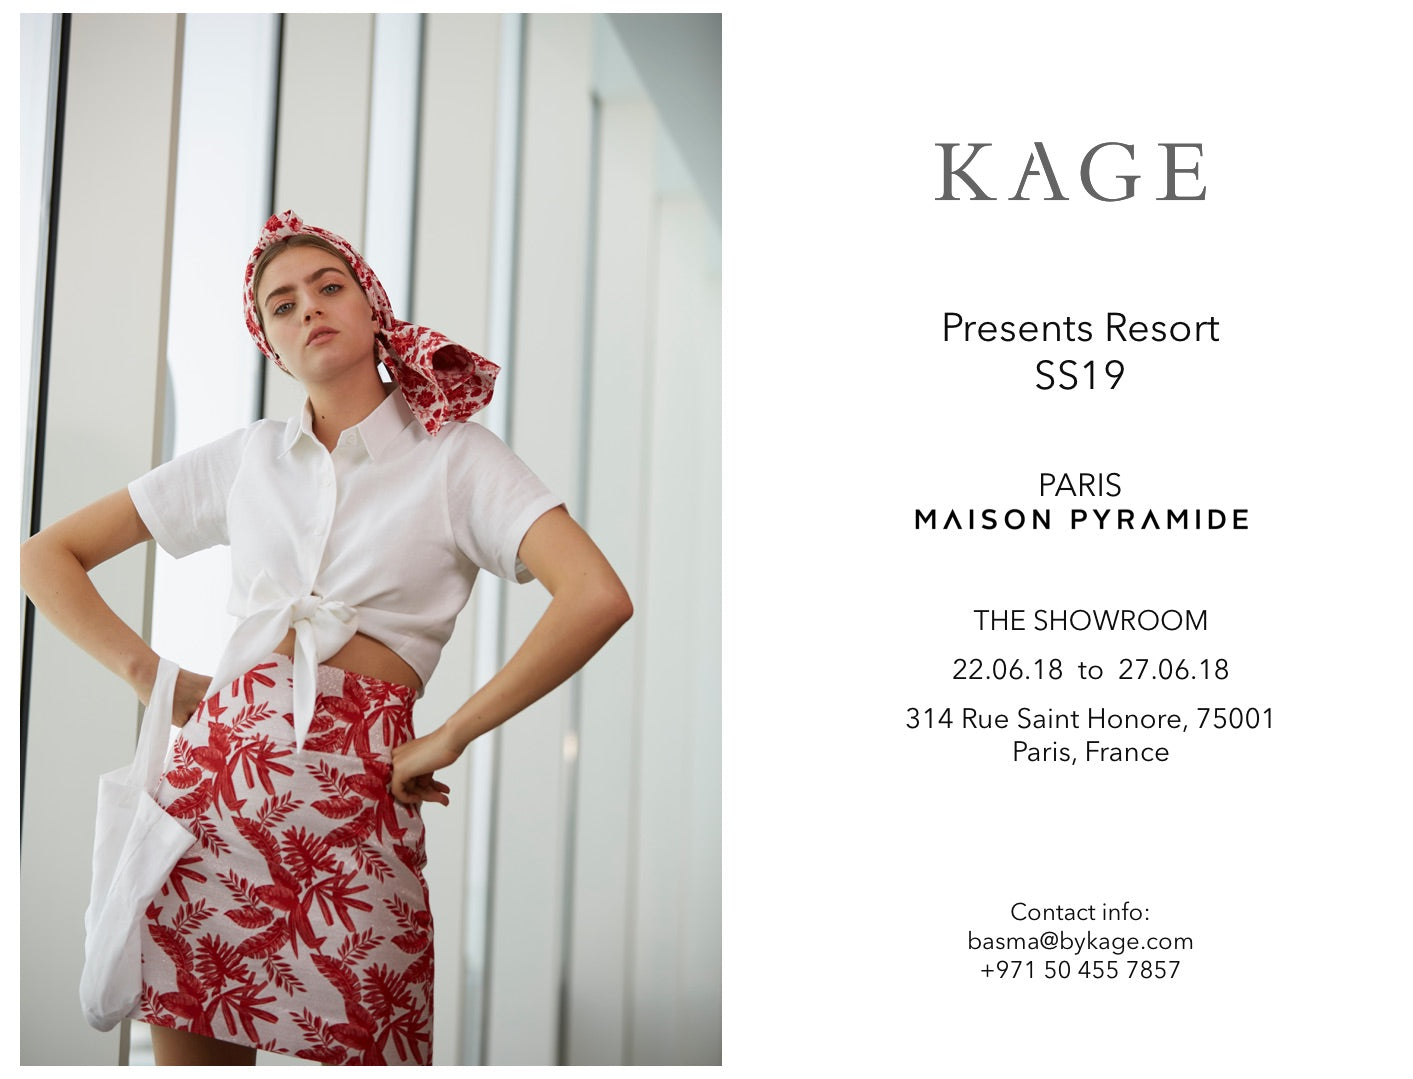 KAGE Resort SS19 showroom dates